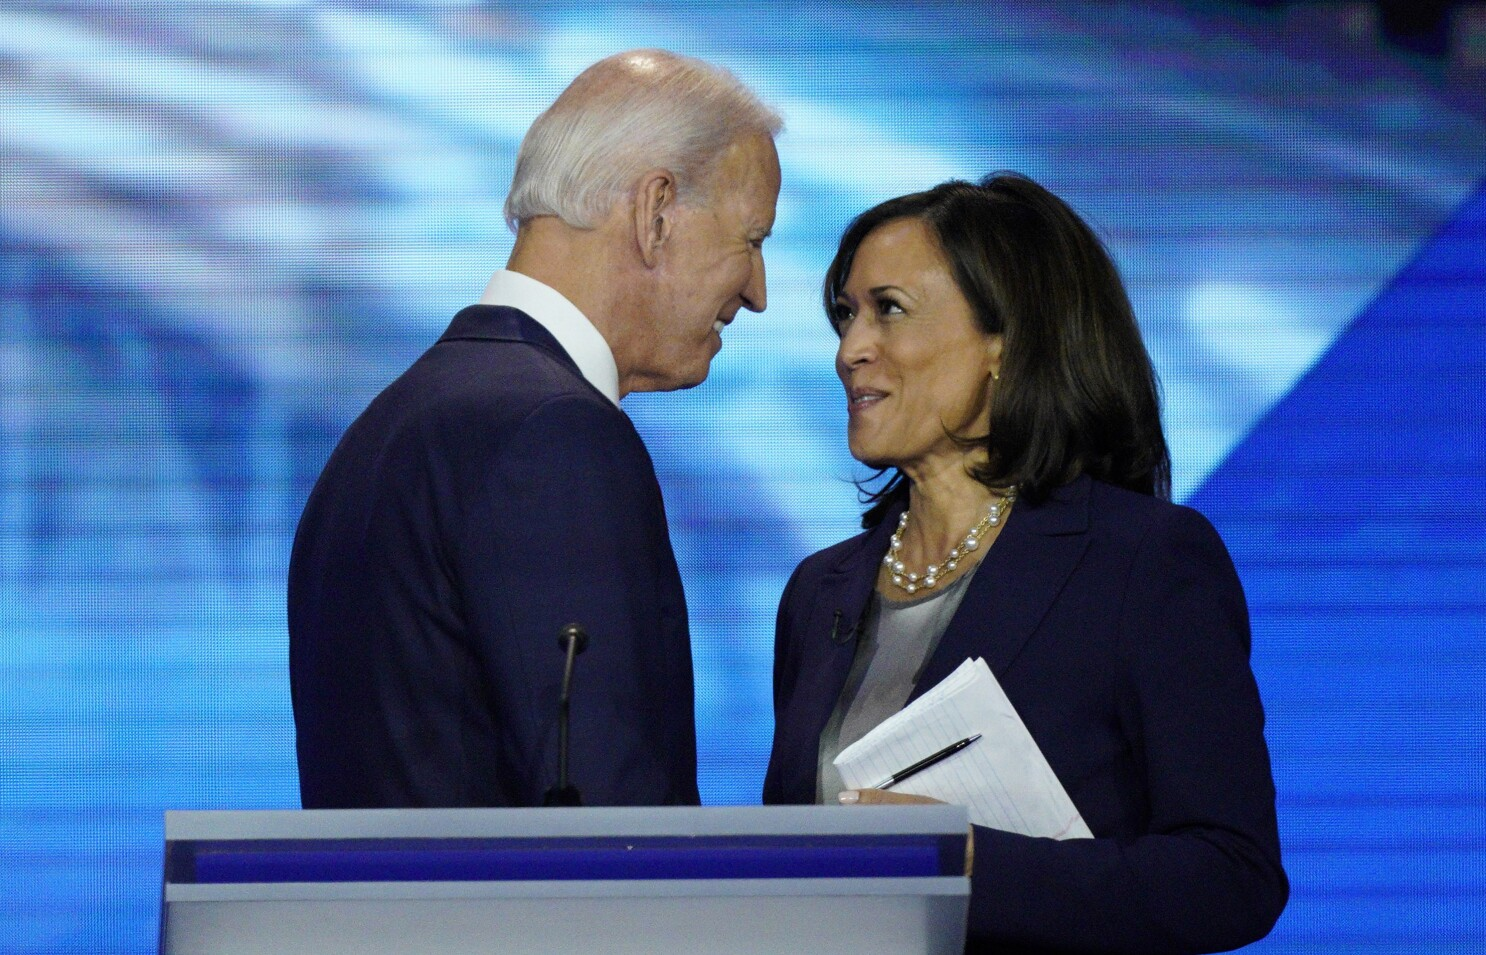 Joe Biden chooses Kamala Harris as his VP pick - Los Angeles Times